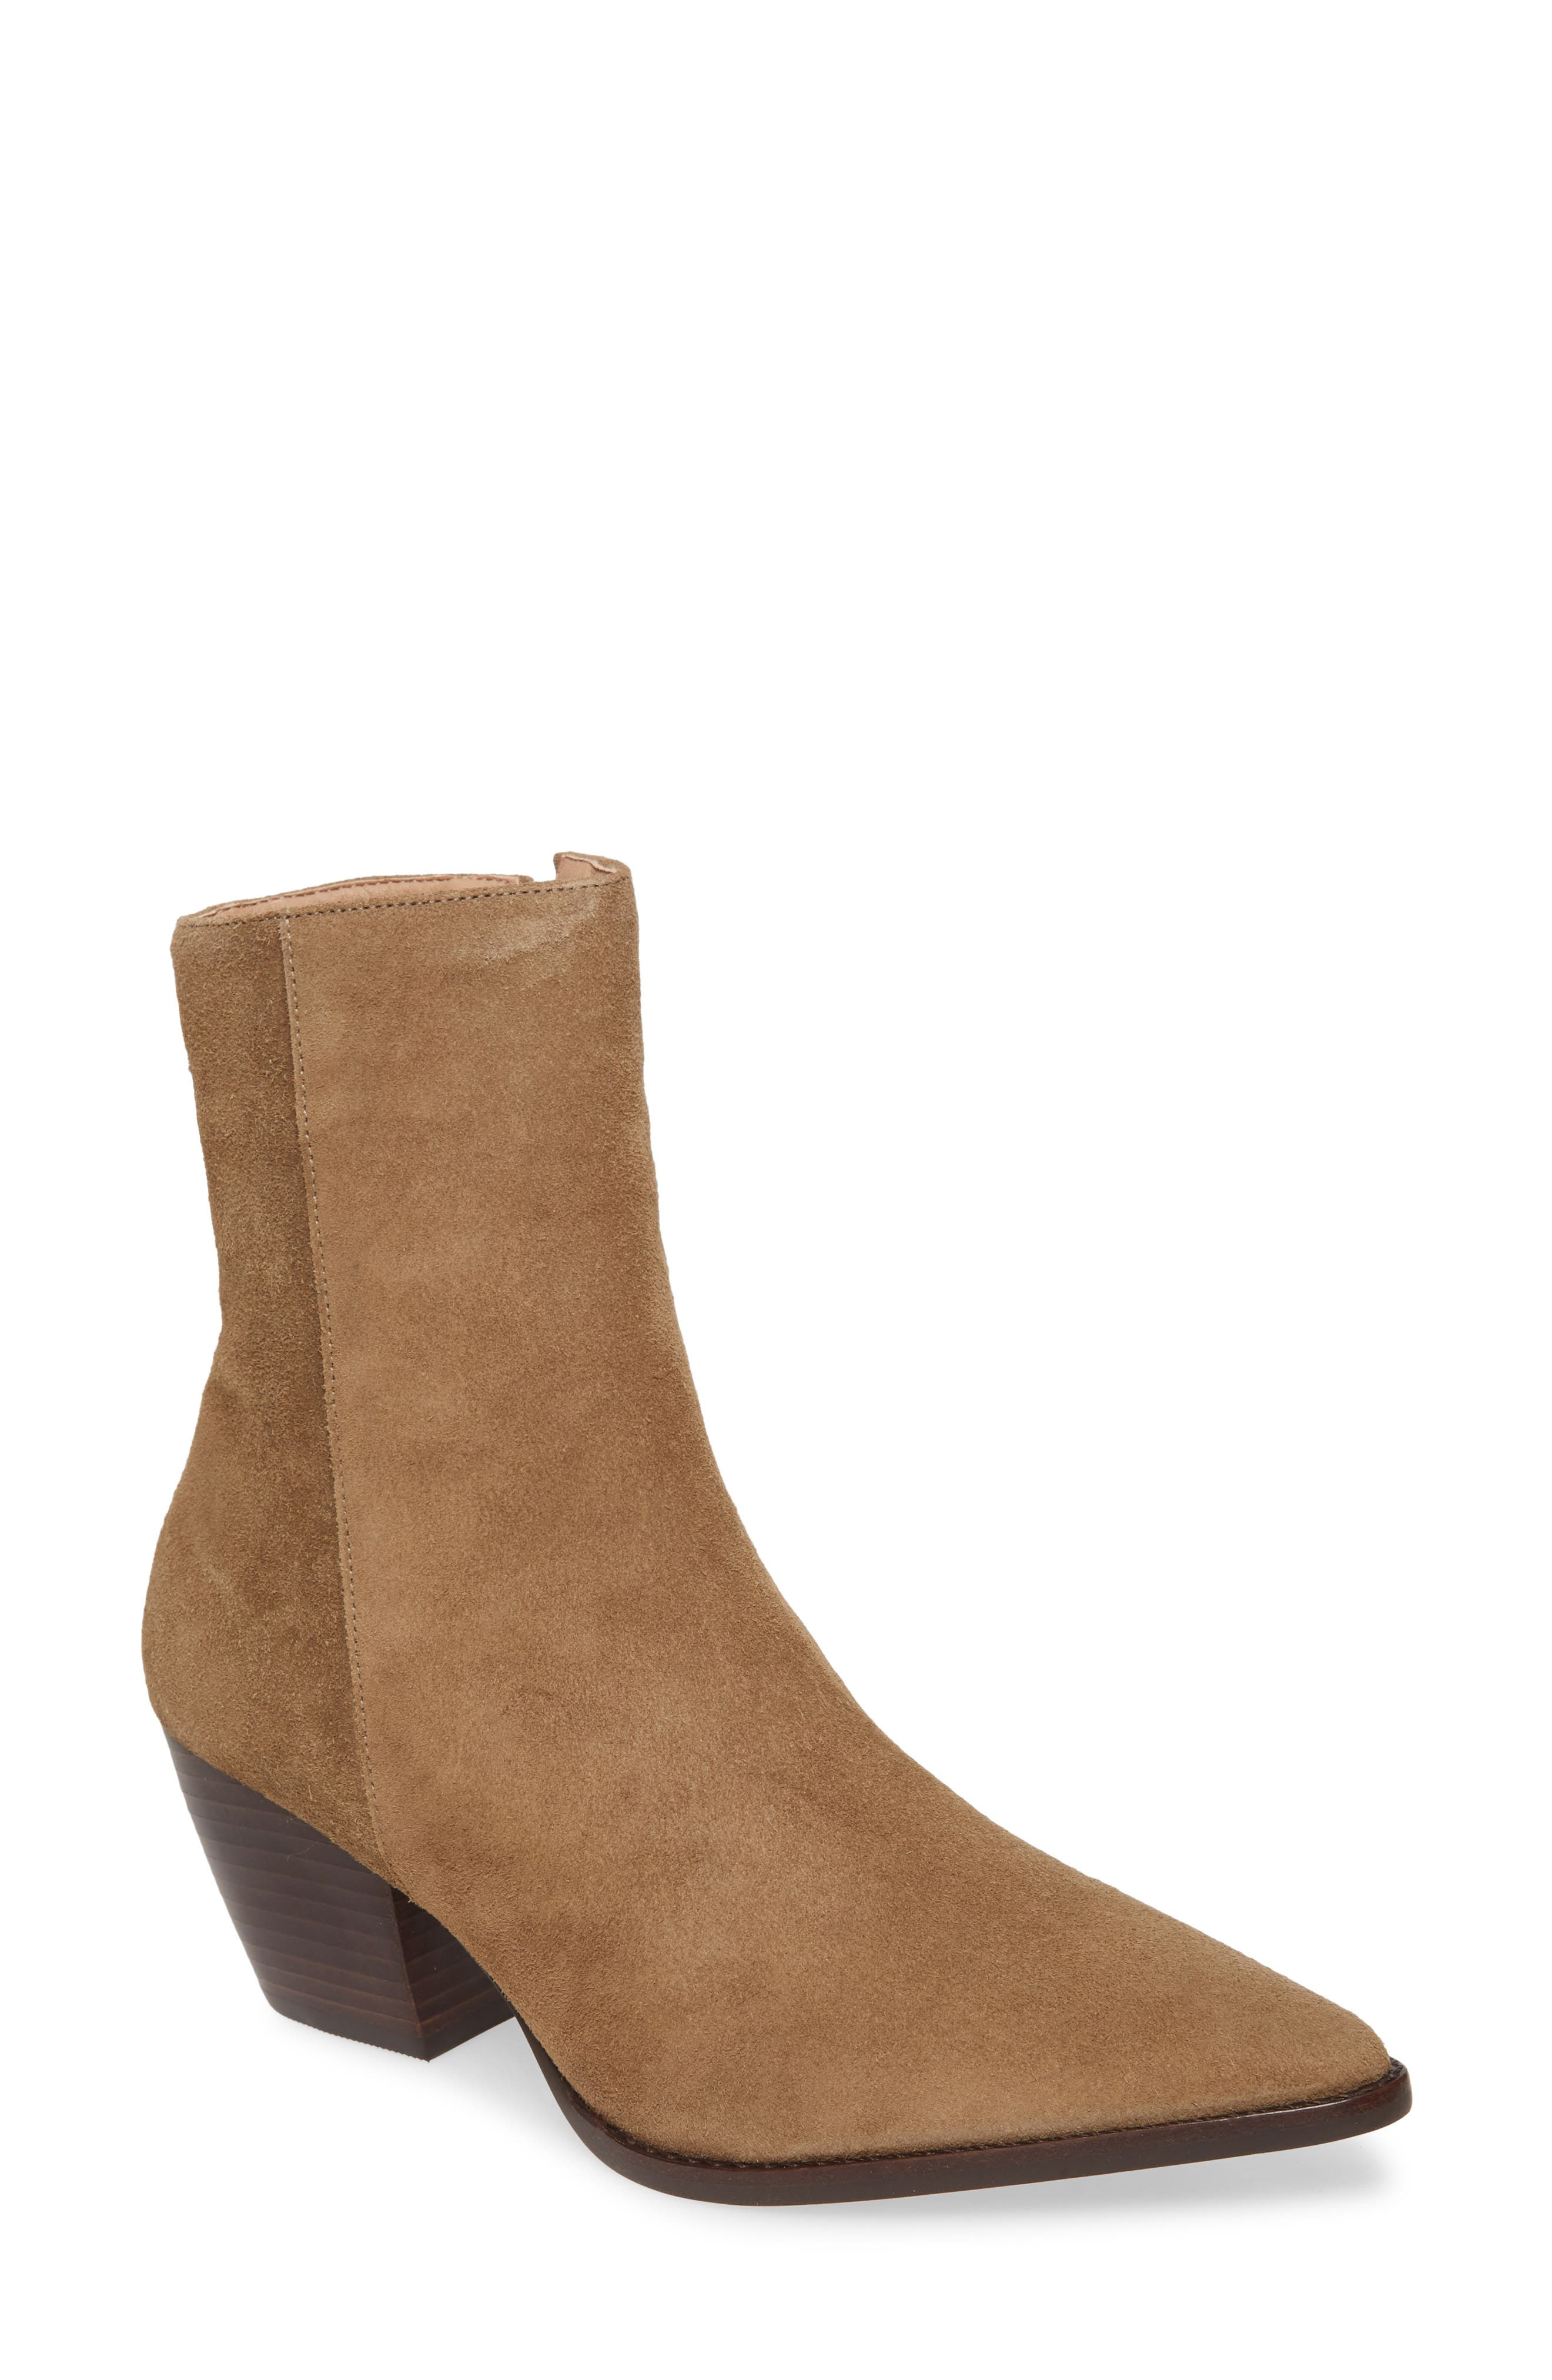 Matisse Caty Western Pointy Toe Bootie, Brown (Nordstrom Exclusive)